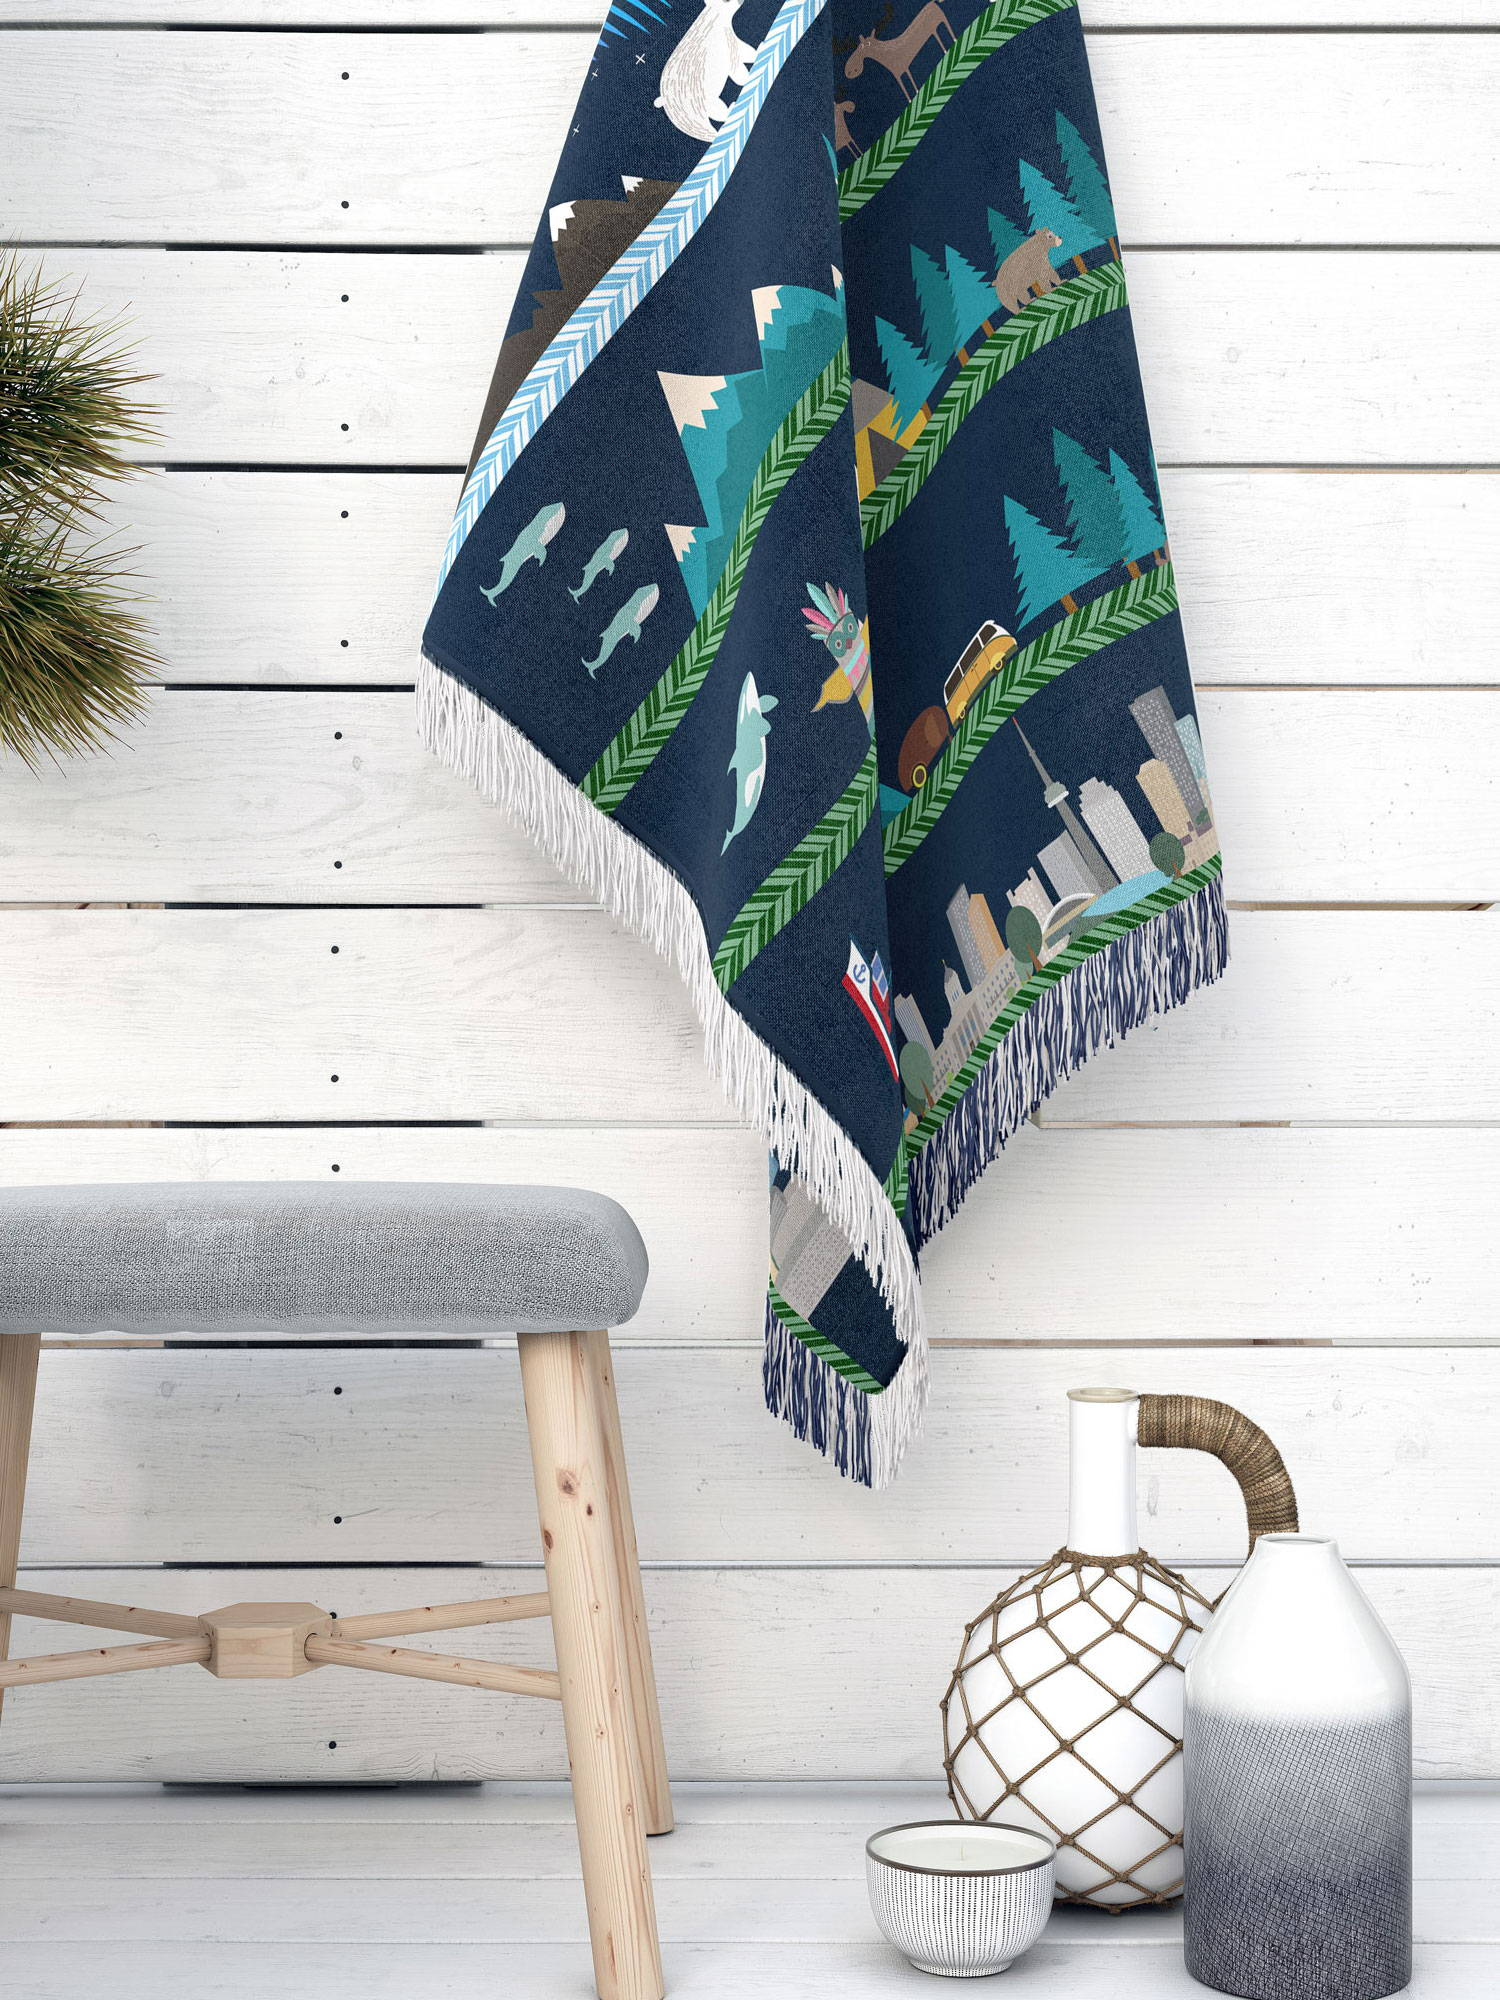 vector illustrated artwork of Canada from north to south as a cotton woven blanket